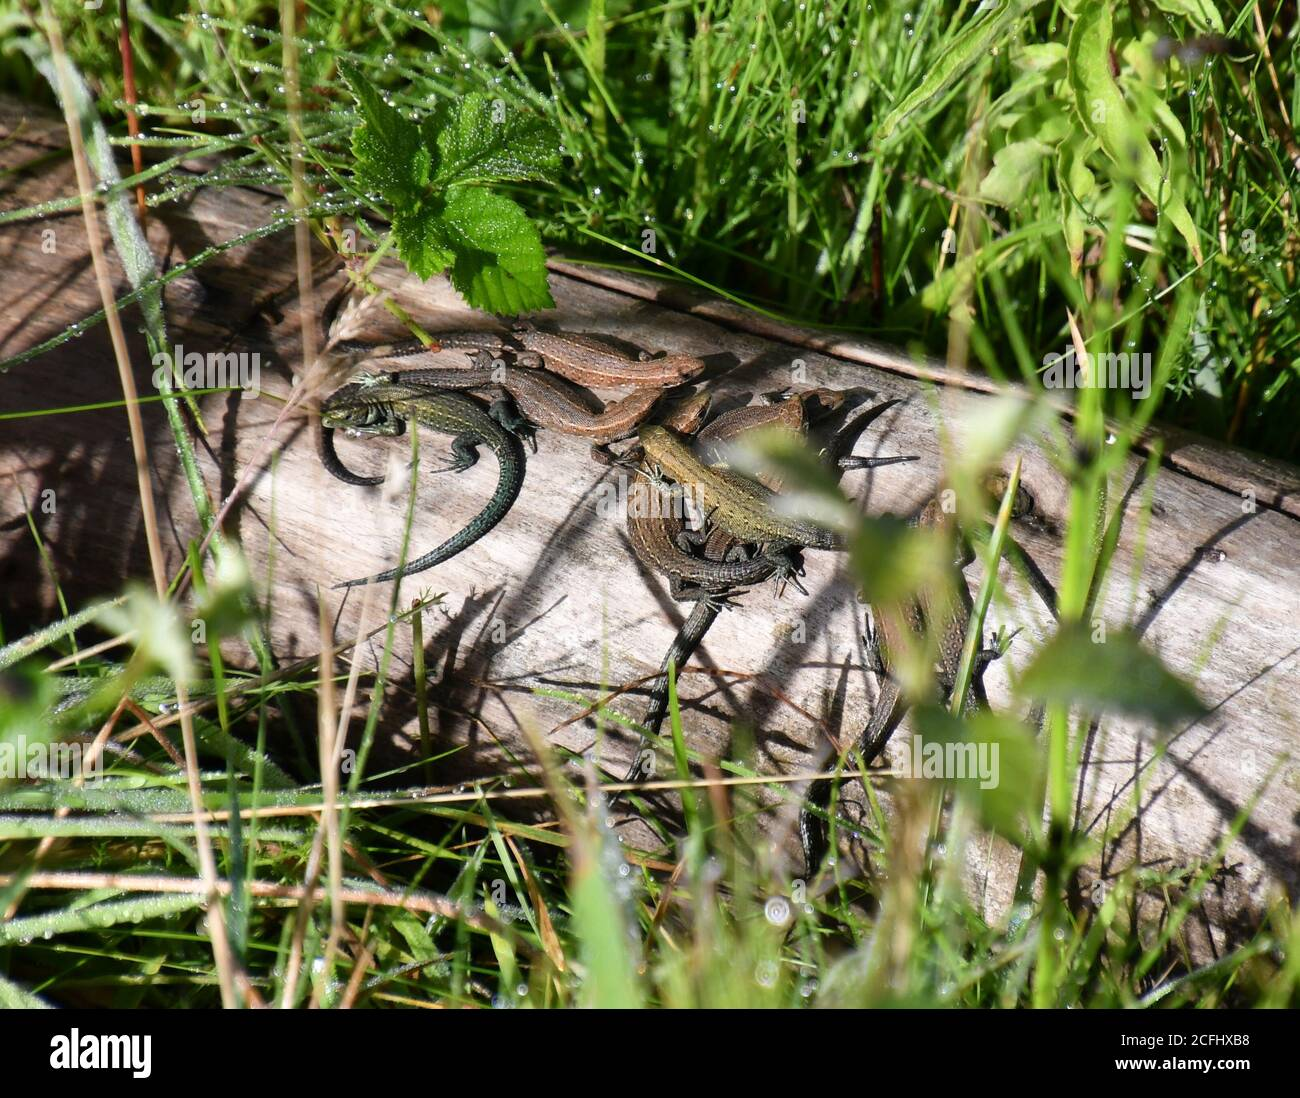 Lizards sunning themselves on a log at Lackford Lakes Nature Reserve, Suffolk, UK Stock Photo